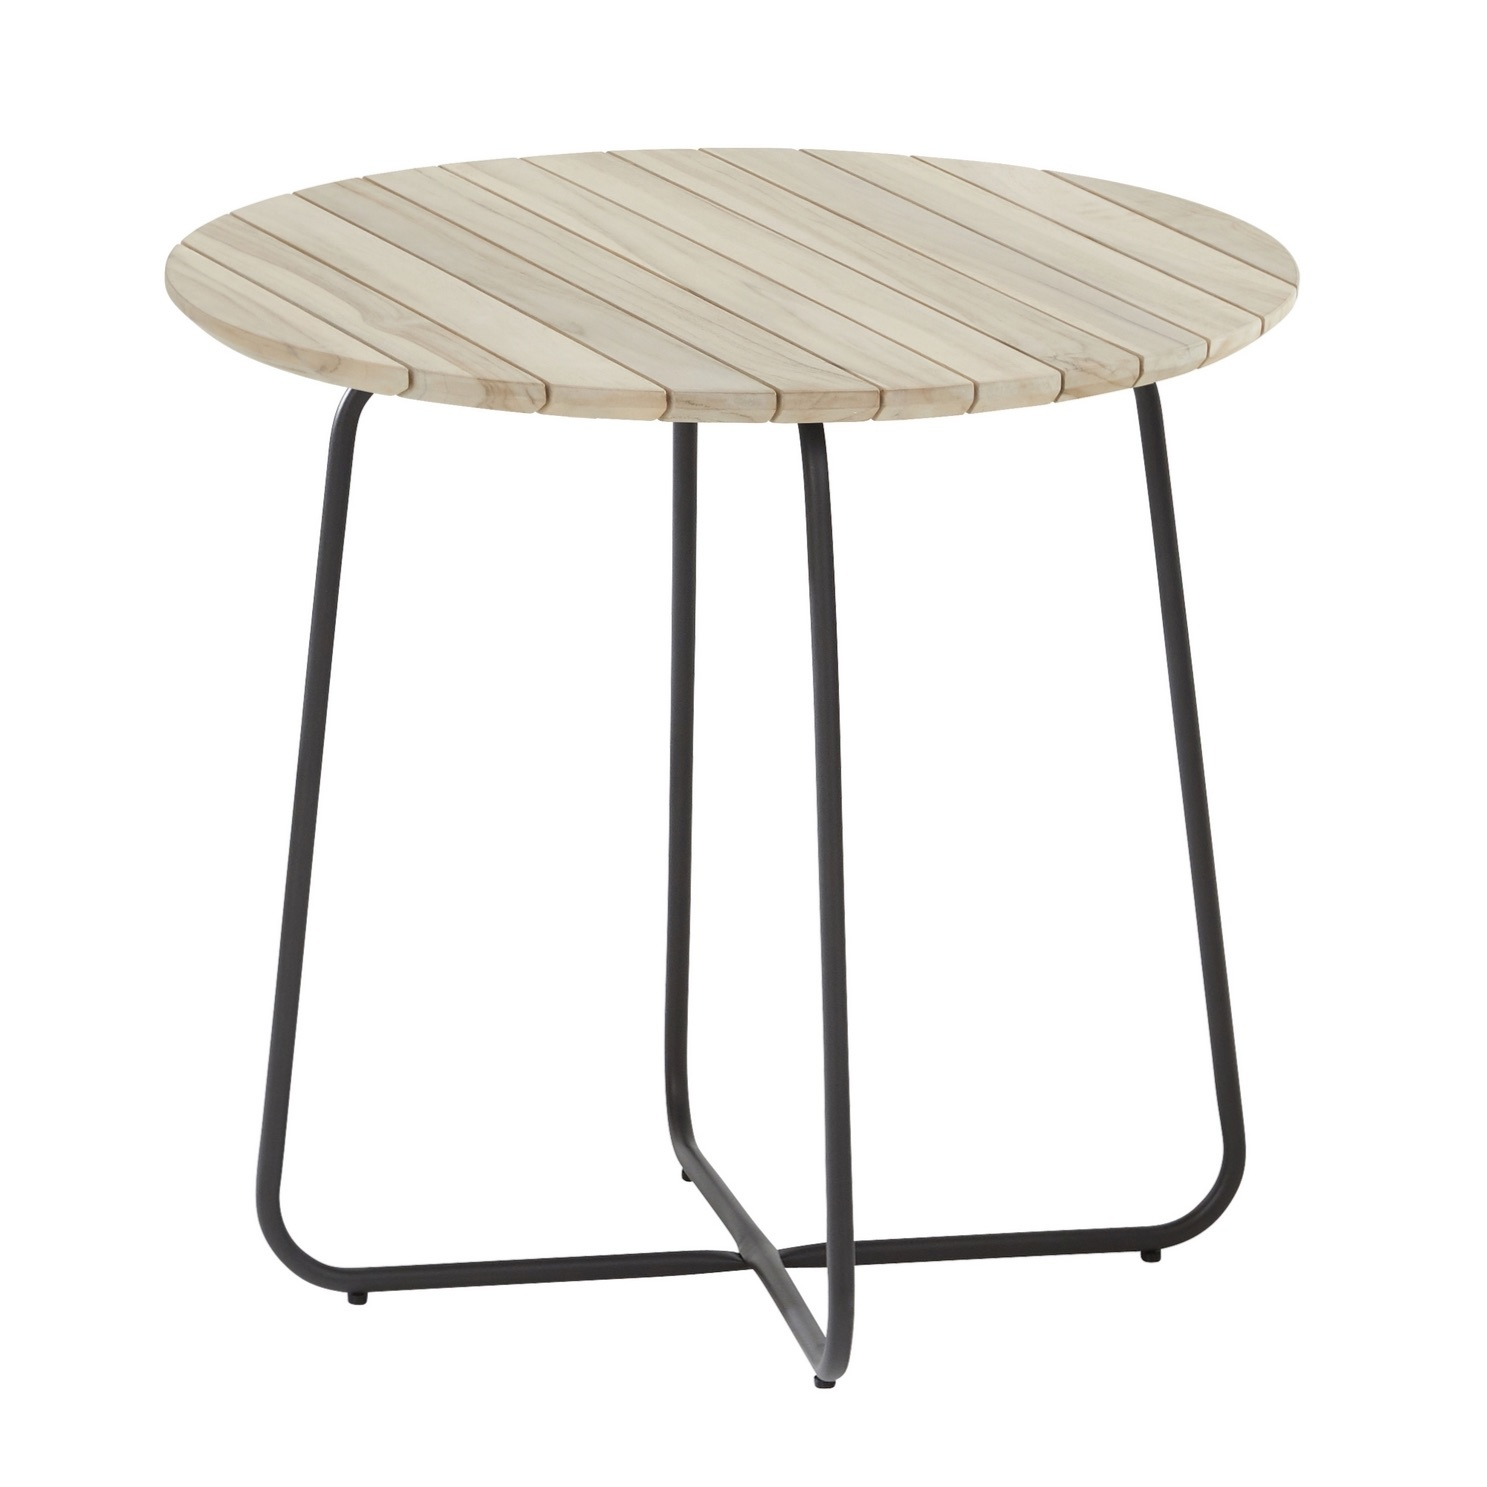 4 Seasons Axel Side Table ø45 - Alum./Teak